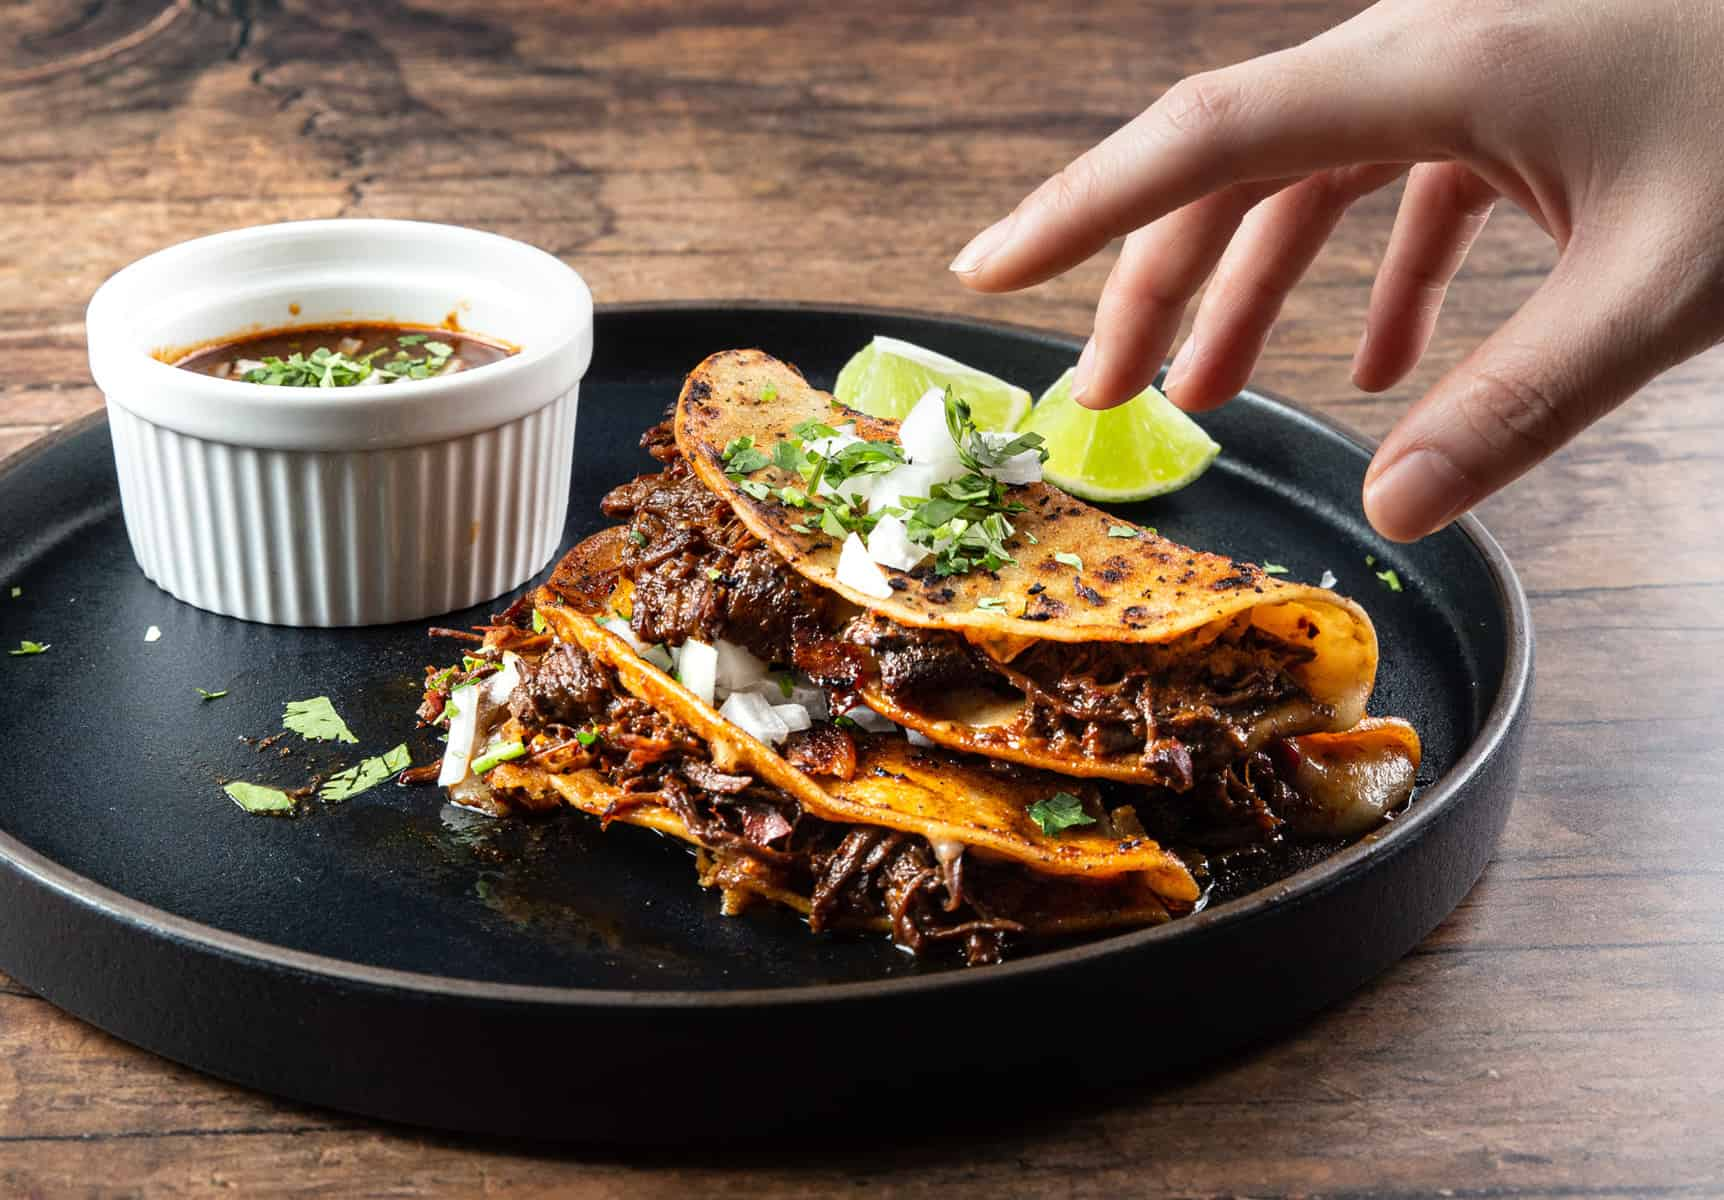 instant pot birria | birria instant pot | instant pot birria tacos | birria recipe | birria de res | tacos de birria | birria tacos recipe #AmyJacky #InstantPot #recipe #mexican #beef #goat